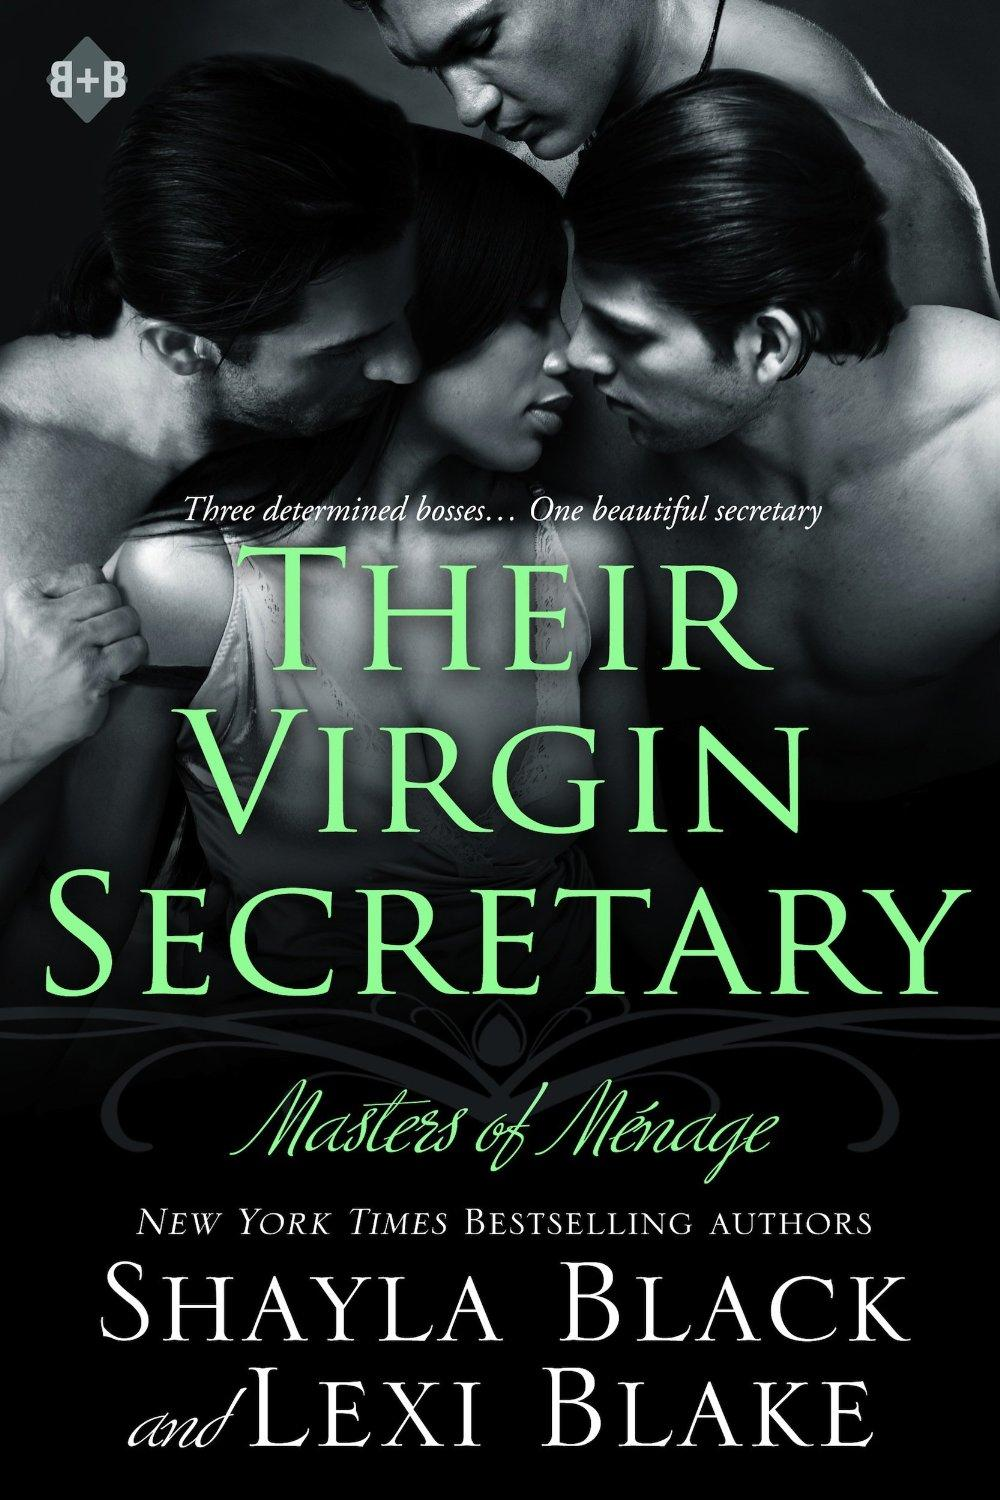 Their Virgin Secretary by Shayla Black and Lexi Blake free download